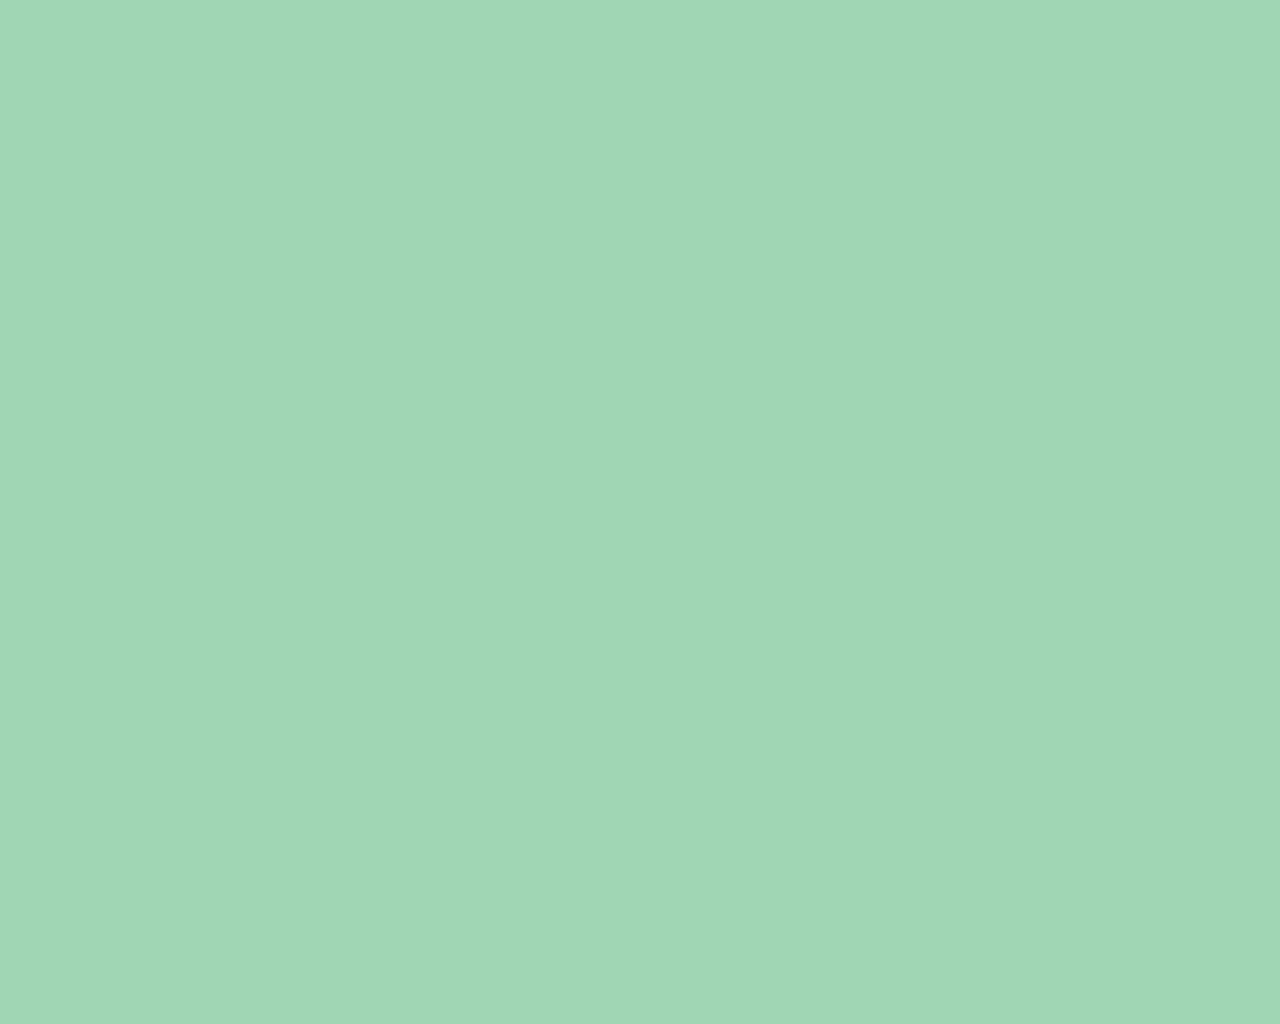 1280x1024 Turquoise Green Solid Color Background